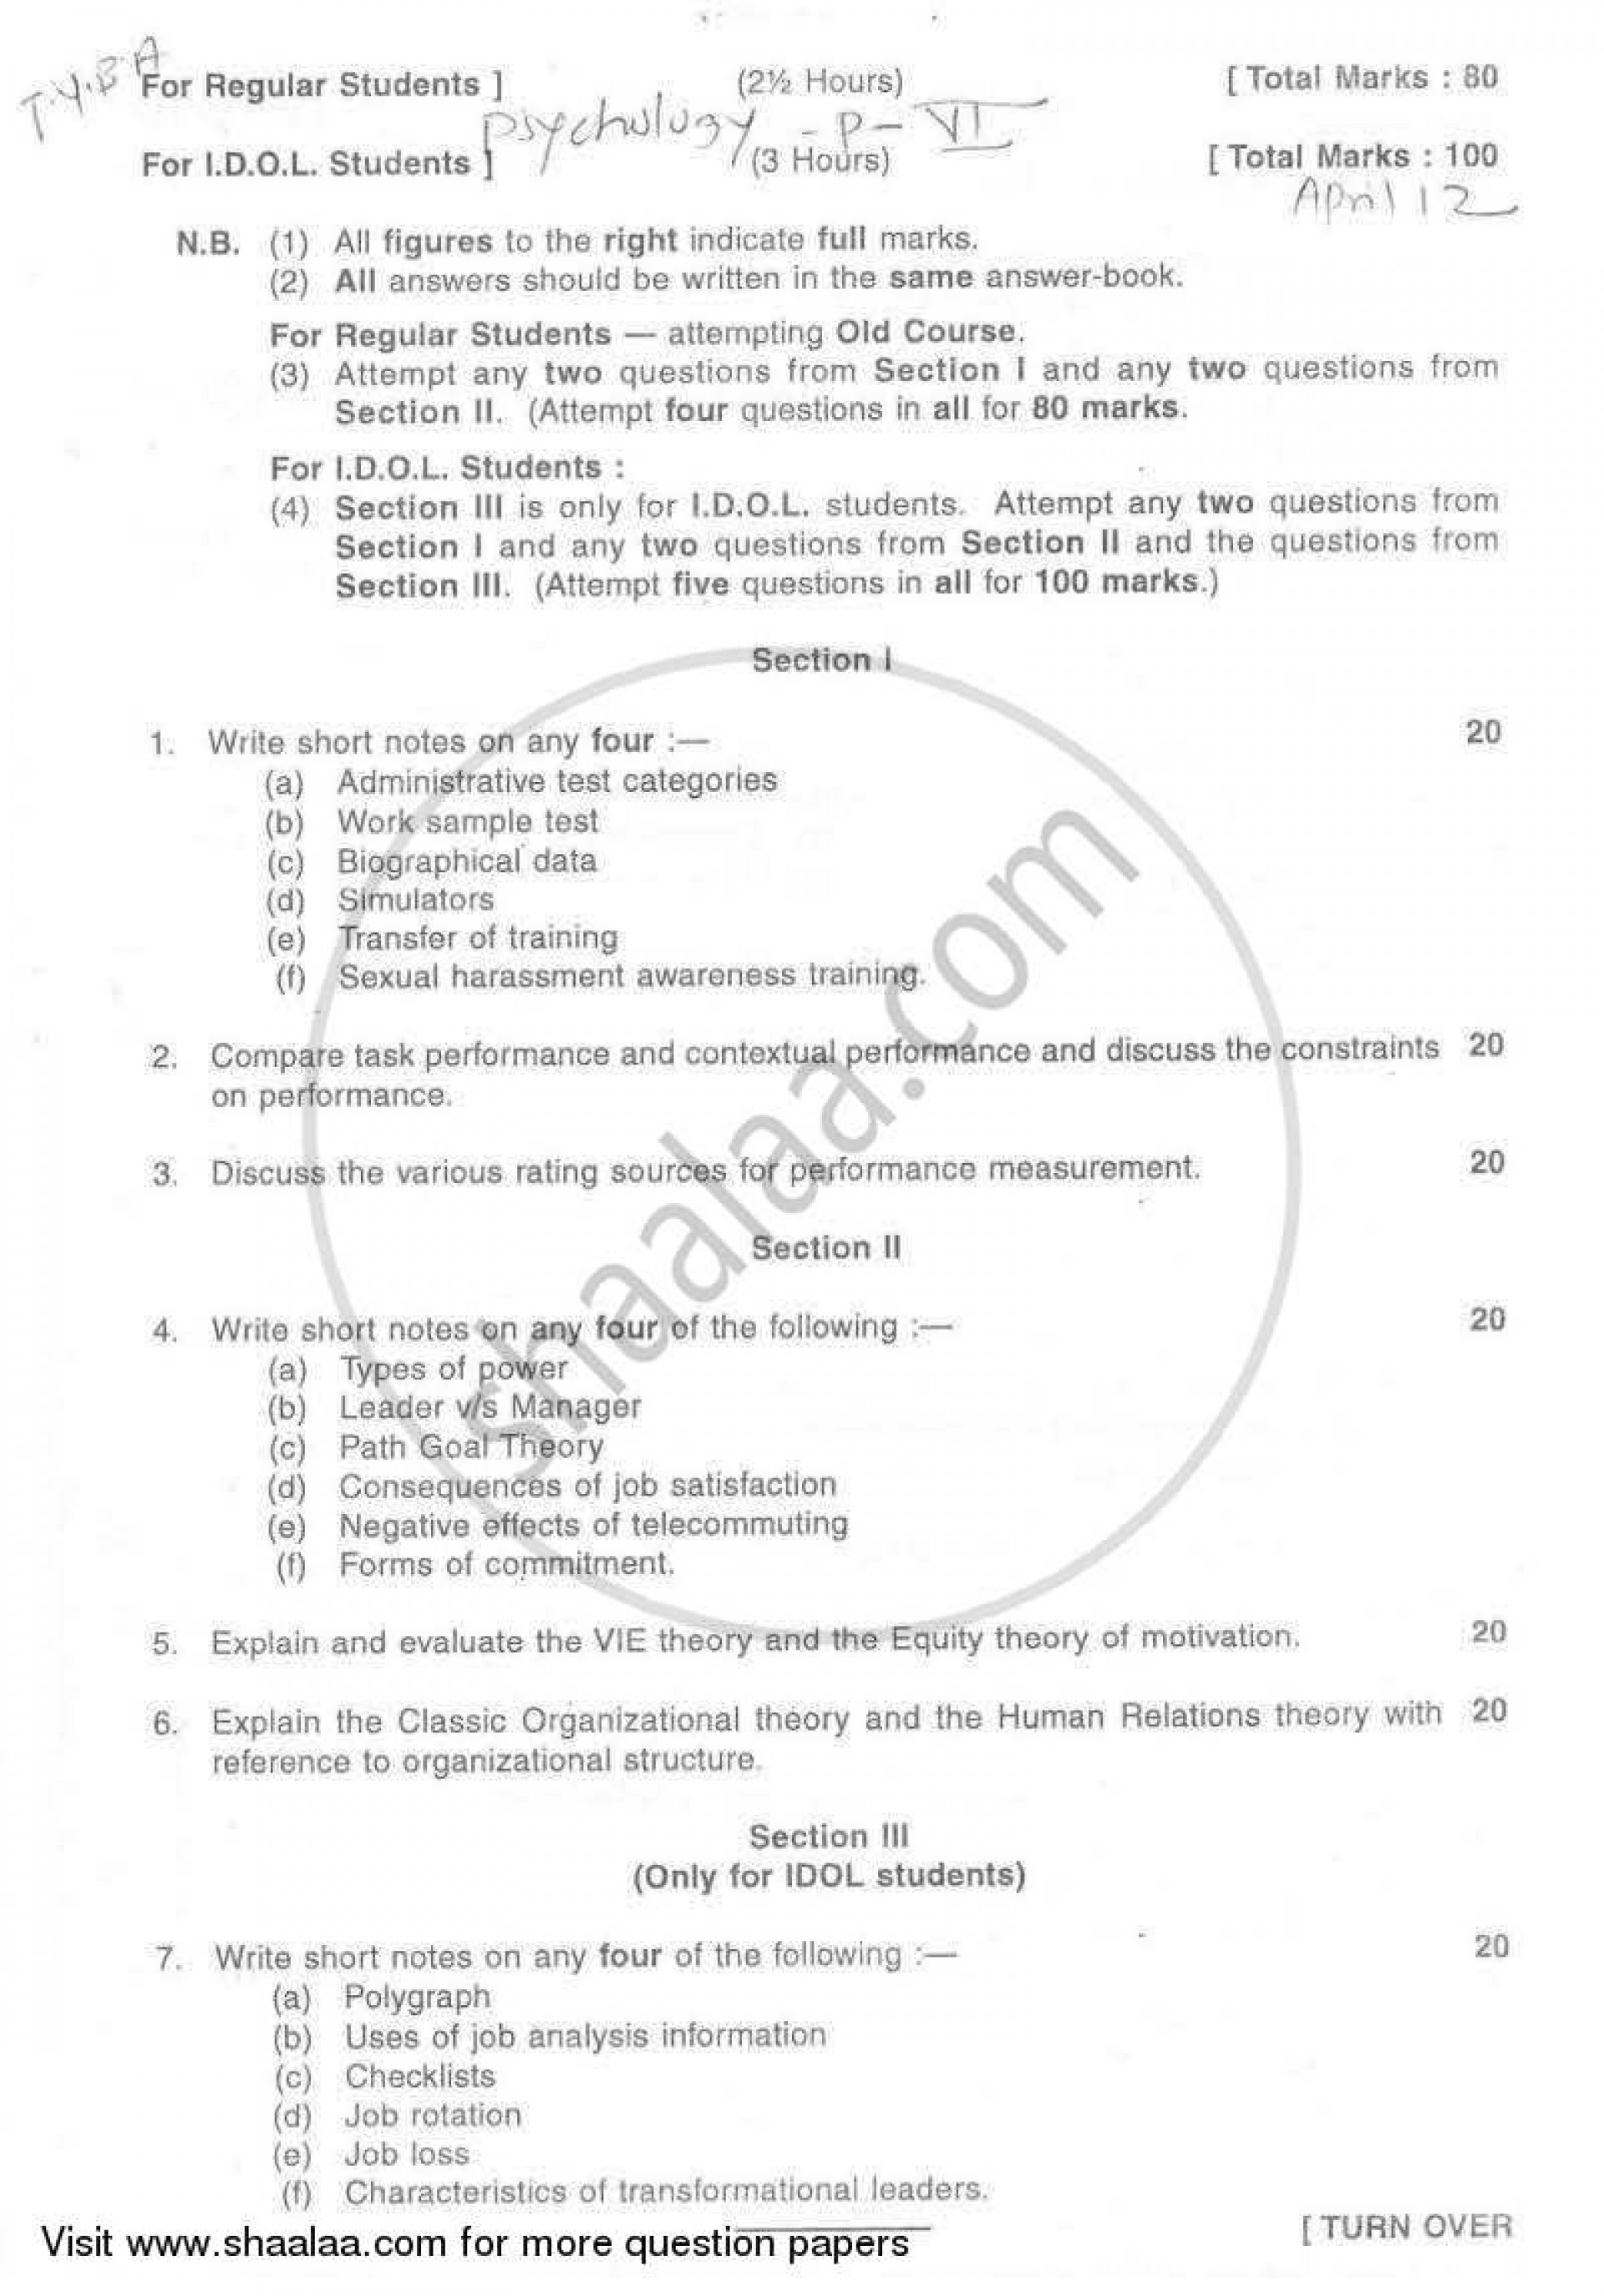 017 Psychologyearch Paper On Dreams University Of Mumbai Bachelor Industrial Organizational T Y Yearly Pattern Semester Tyba 2011 29a03925dfc524f2aa4cb10e4d3da996a Singular Psychology Research Articles Topics 1920